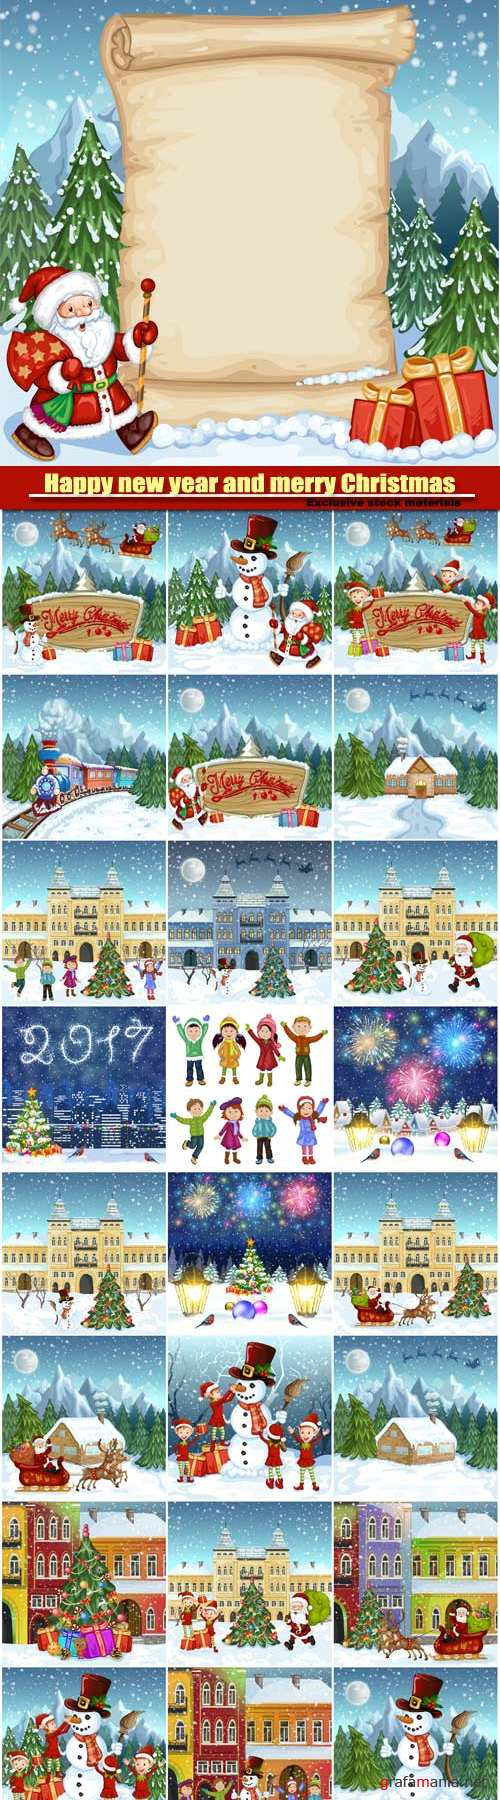 Happy new year and merry Christmas vector, winter town, children with snowman